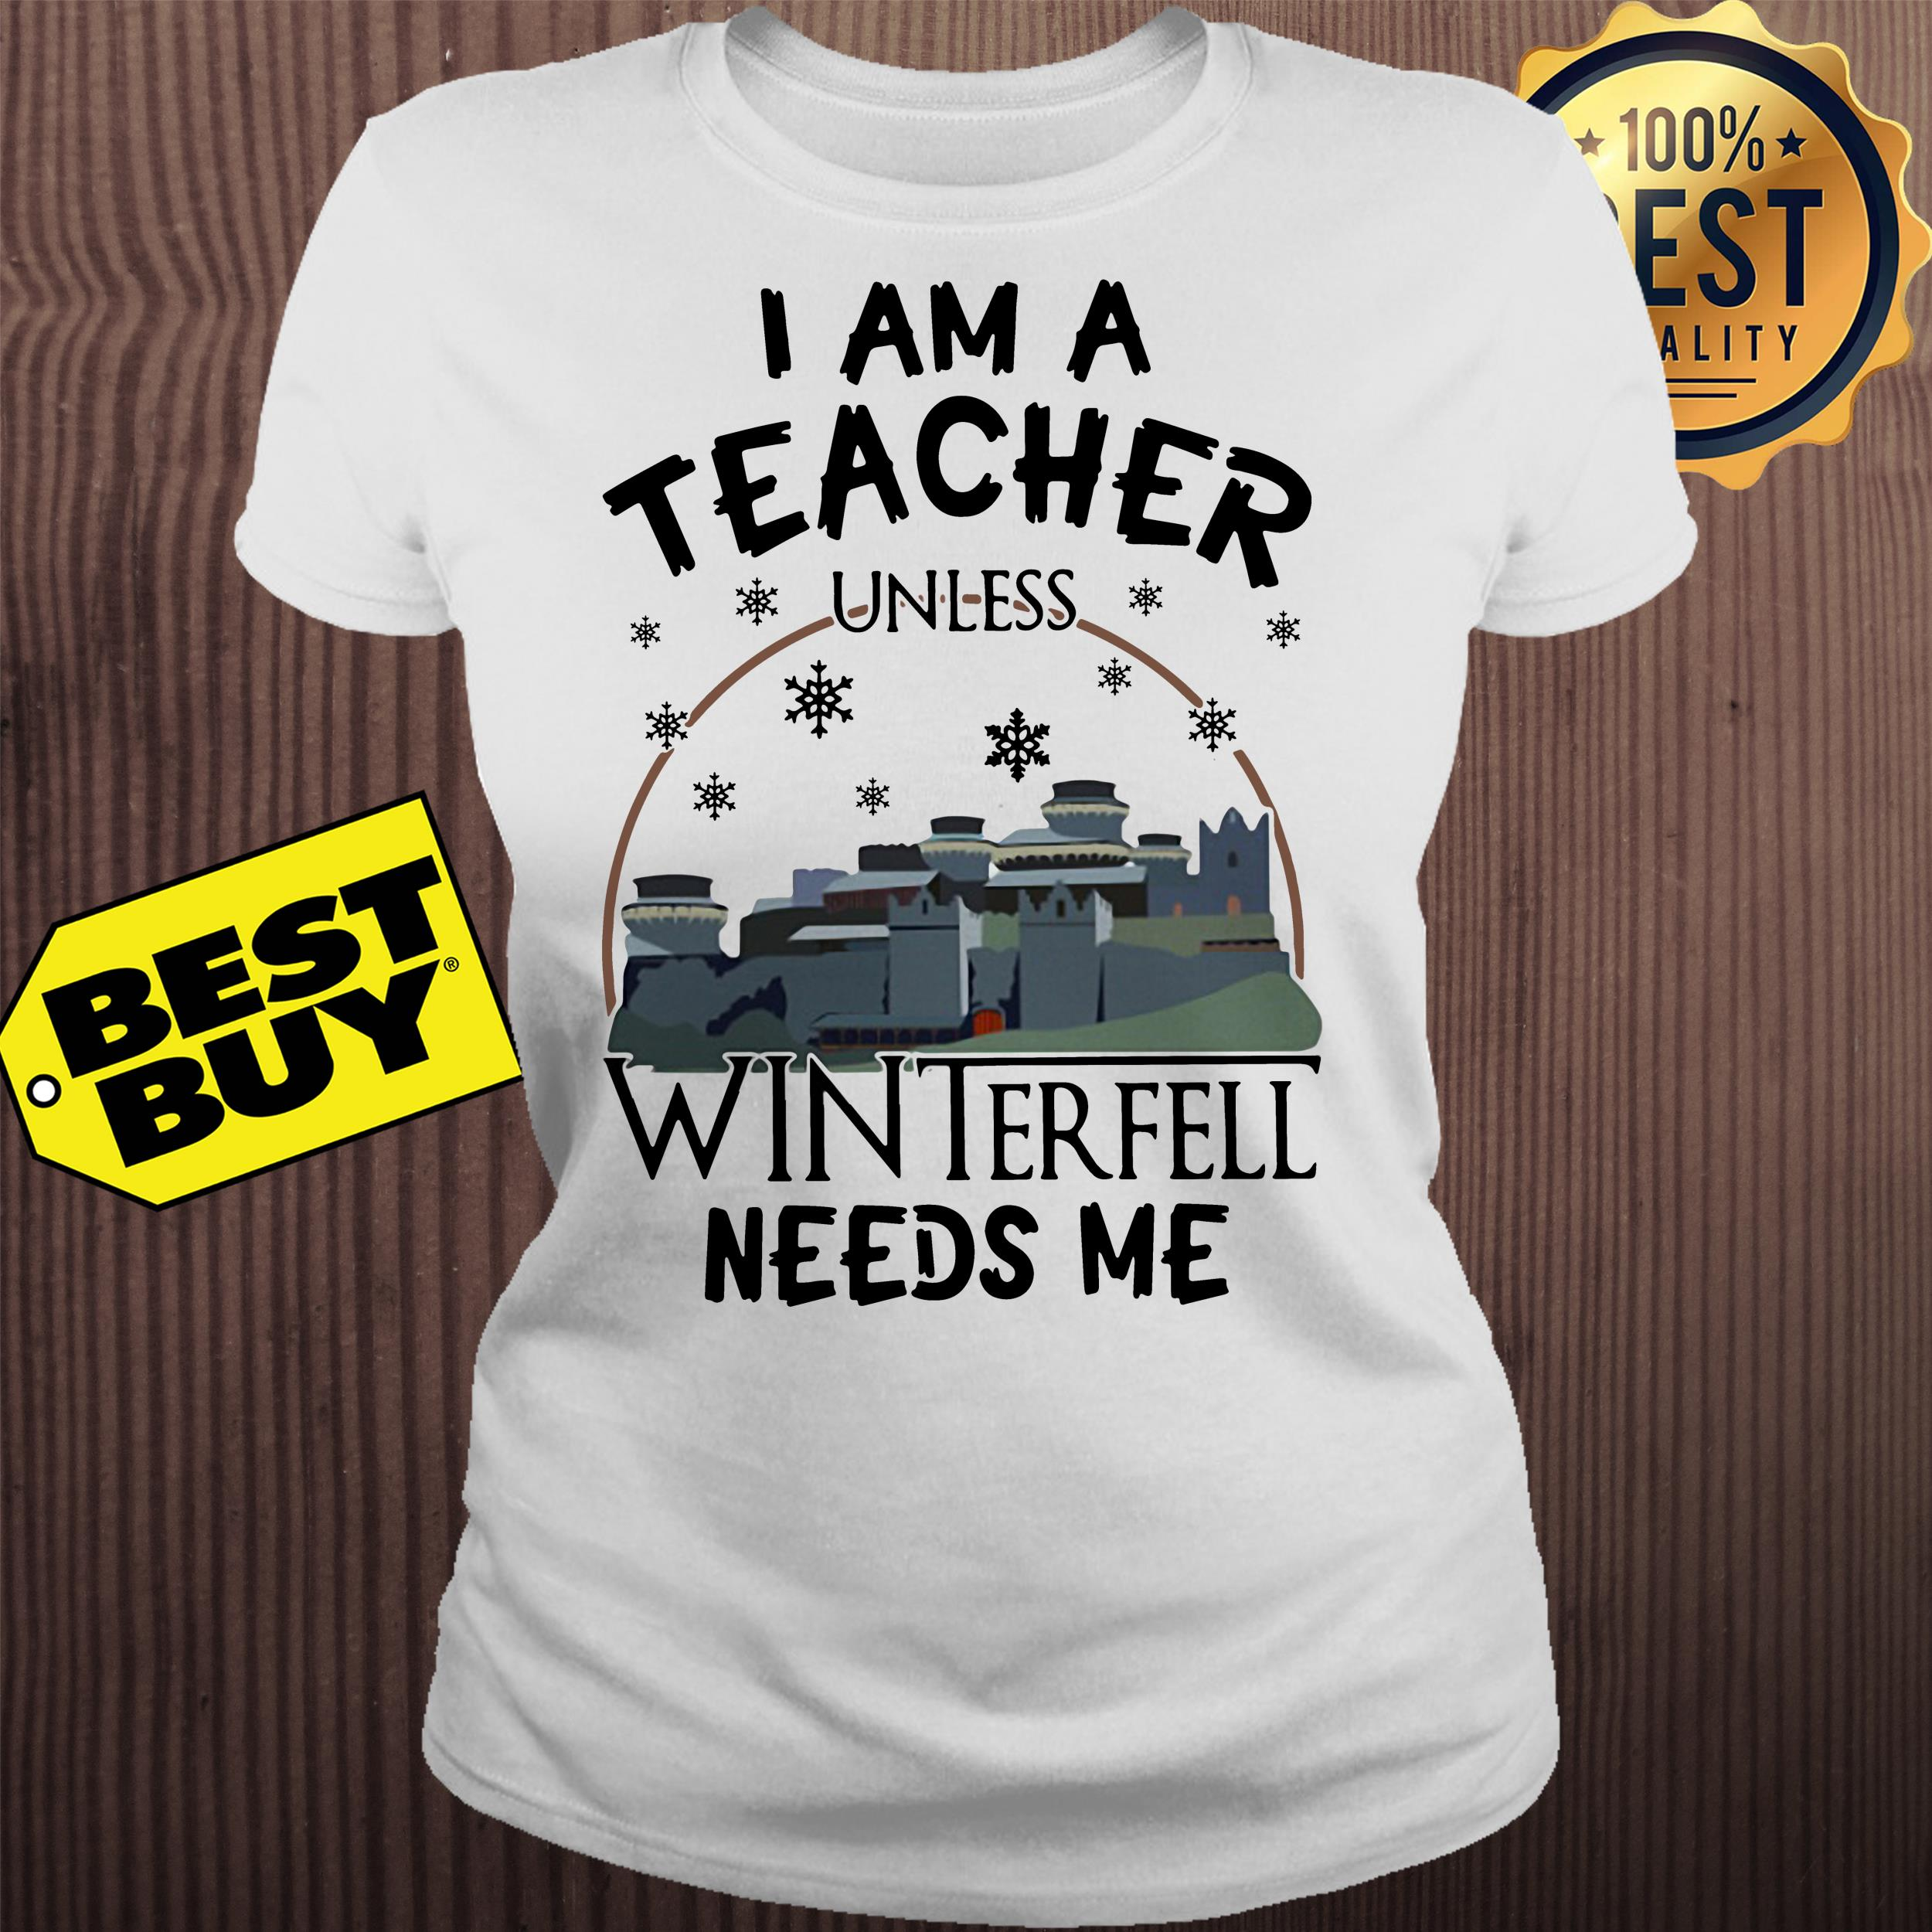 I am a teacher unless winterfell needs me ladies tee